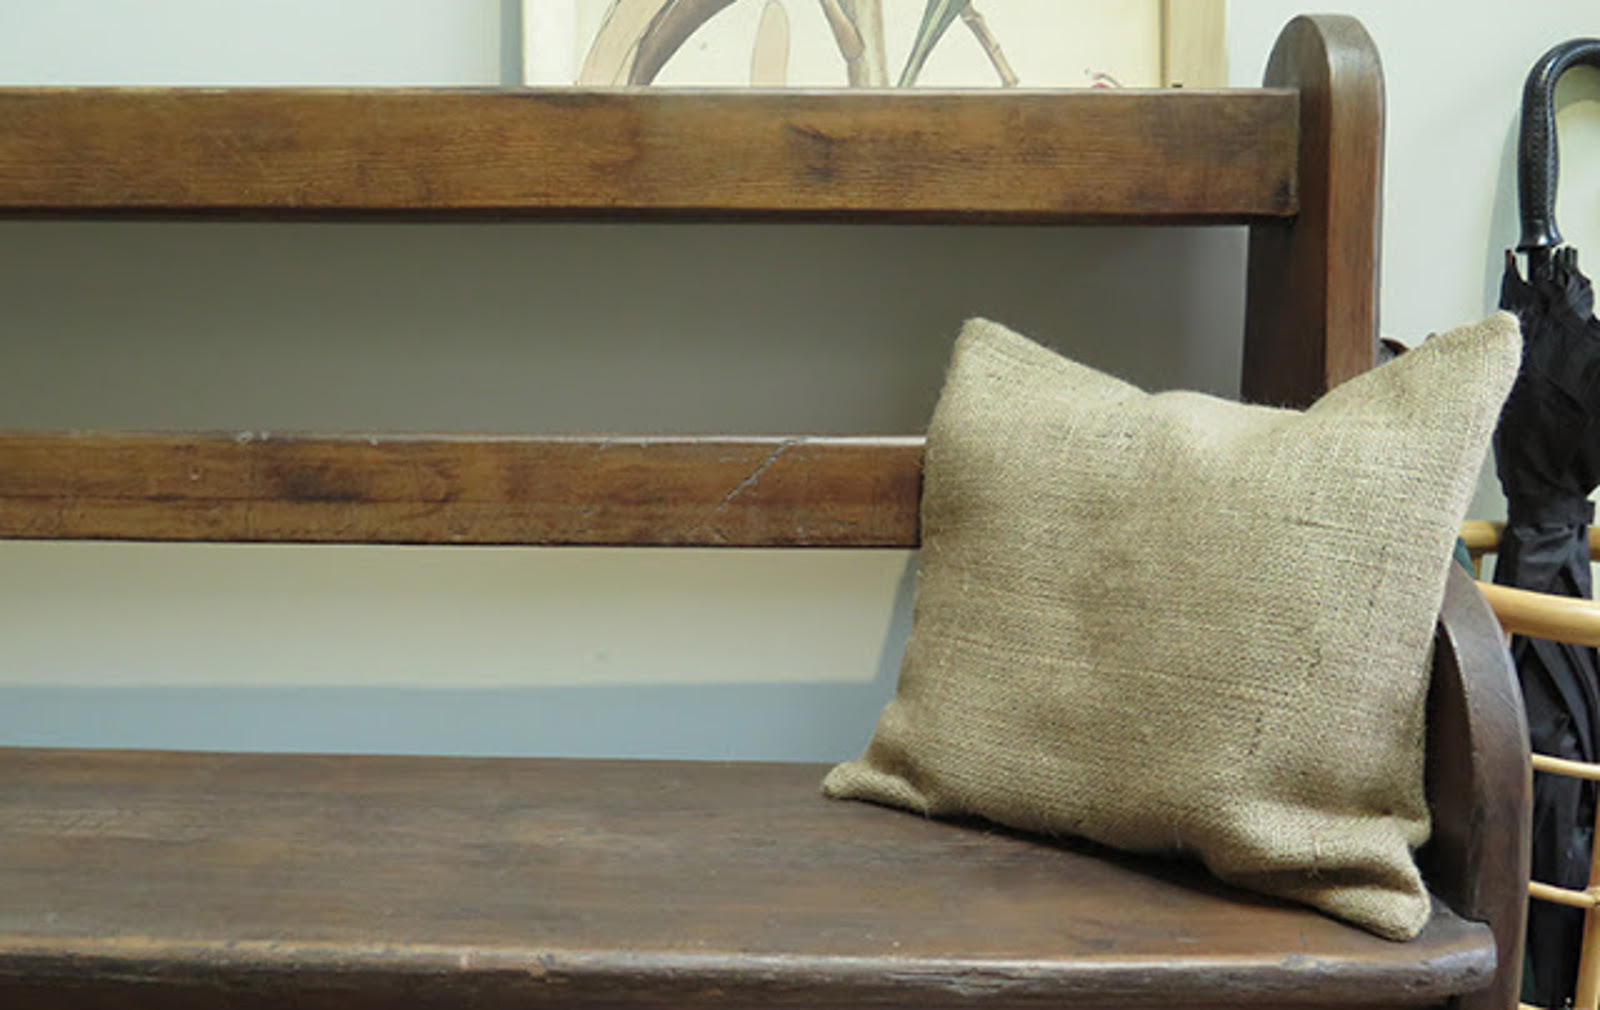 How to Upcycle Synthetic Clothing Into Pillows